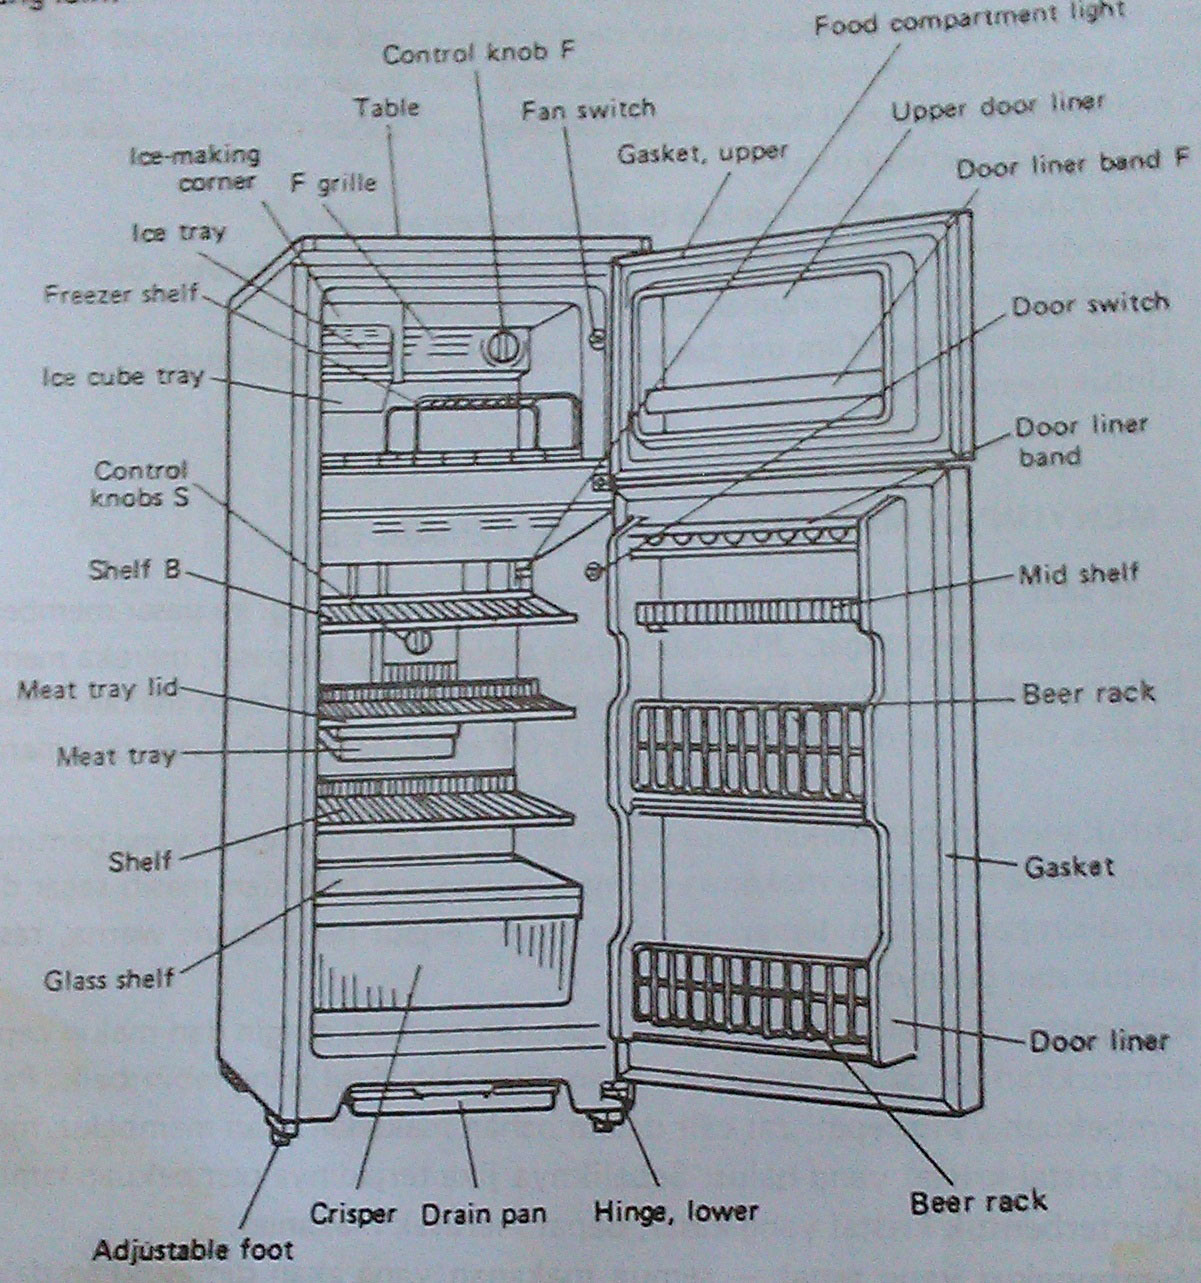 hight resolution of wiring diagram kulkas 2 pintu mitsubishi wiring diagram 2004 mitsubishi endeavor fuse box diagram mitsubishi mini